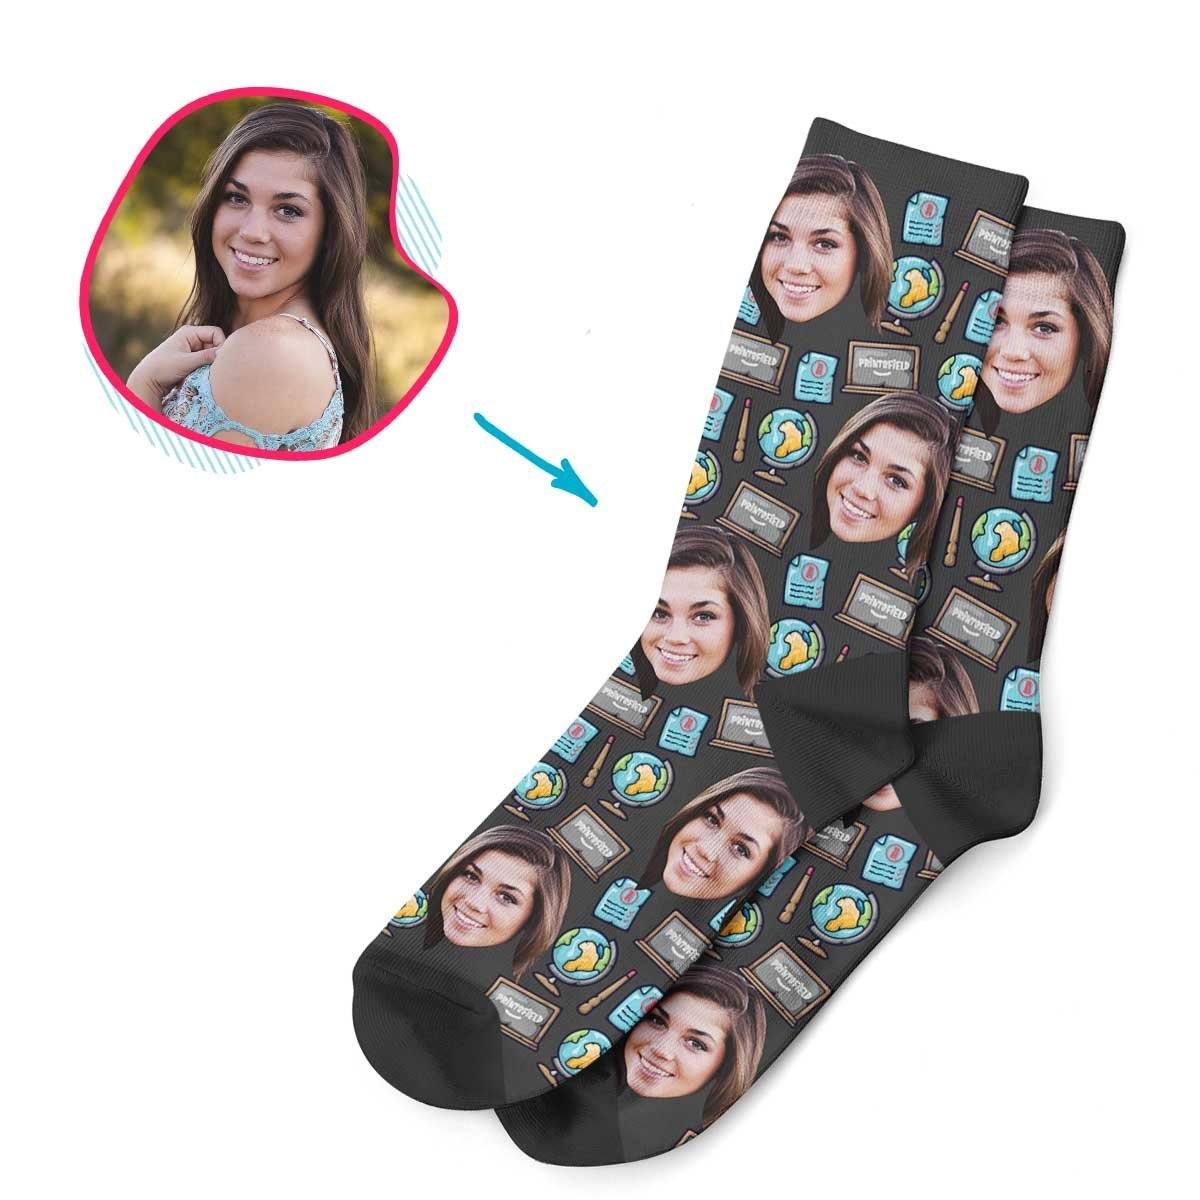 Dark Teacher personalized socks with photo of face printed on them